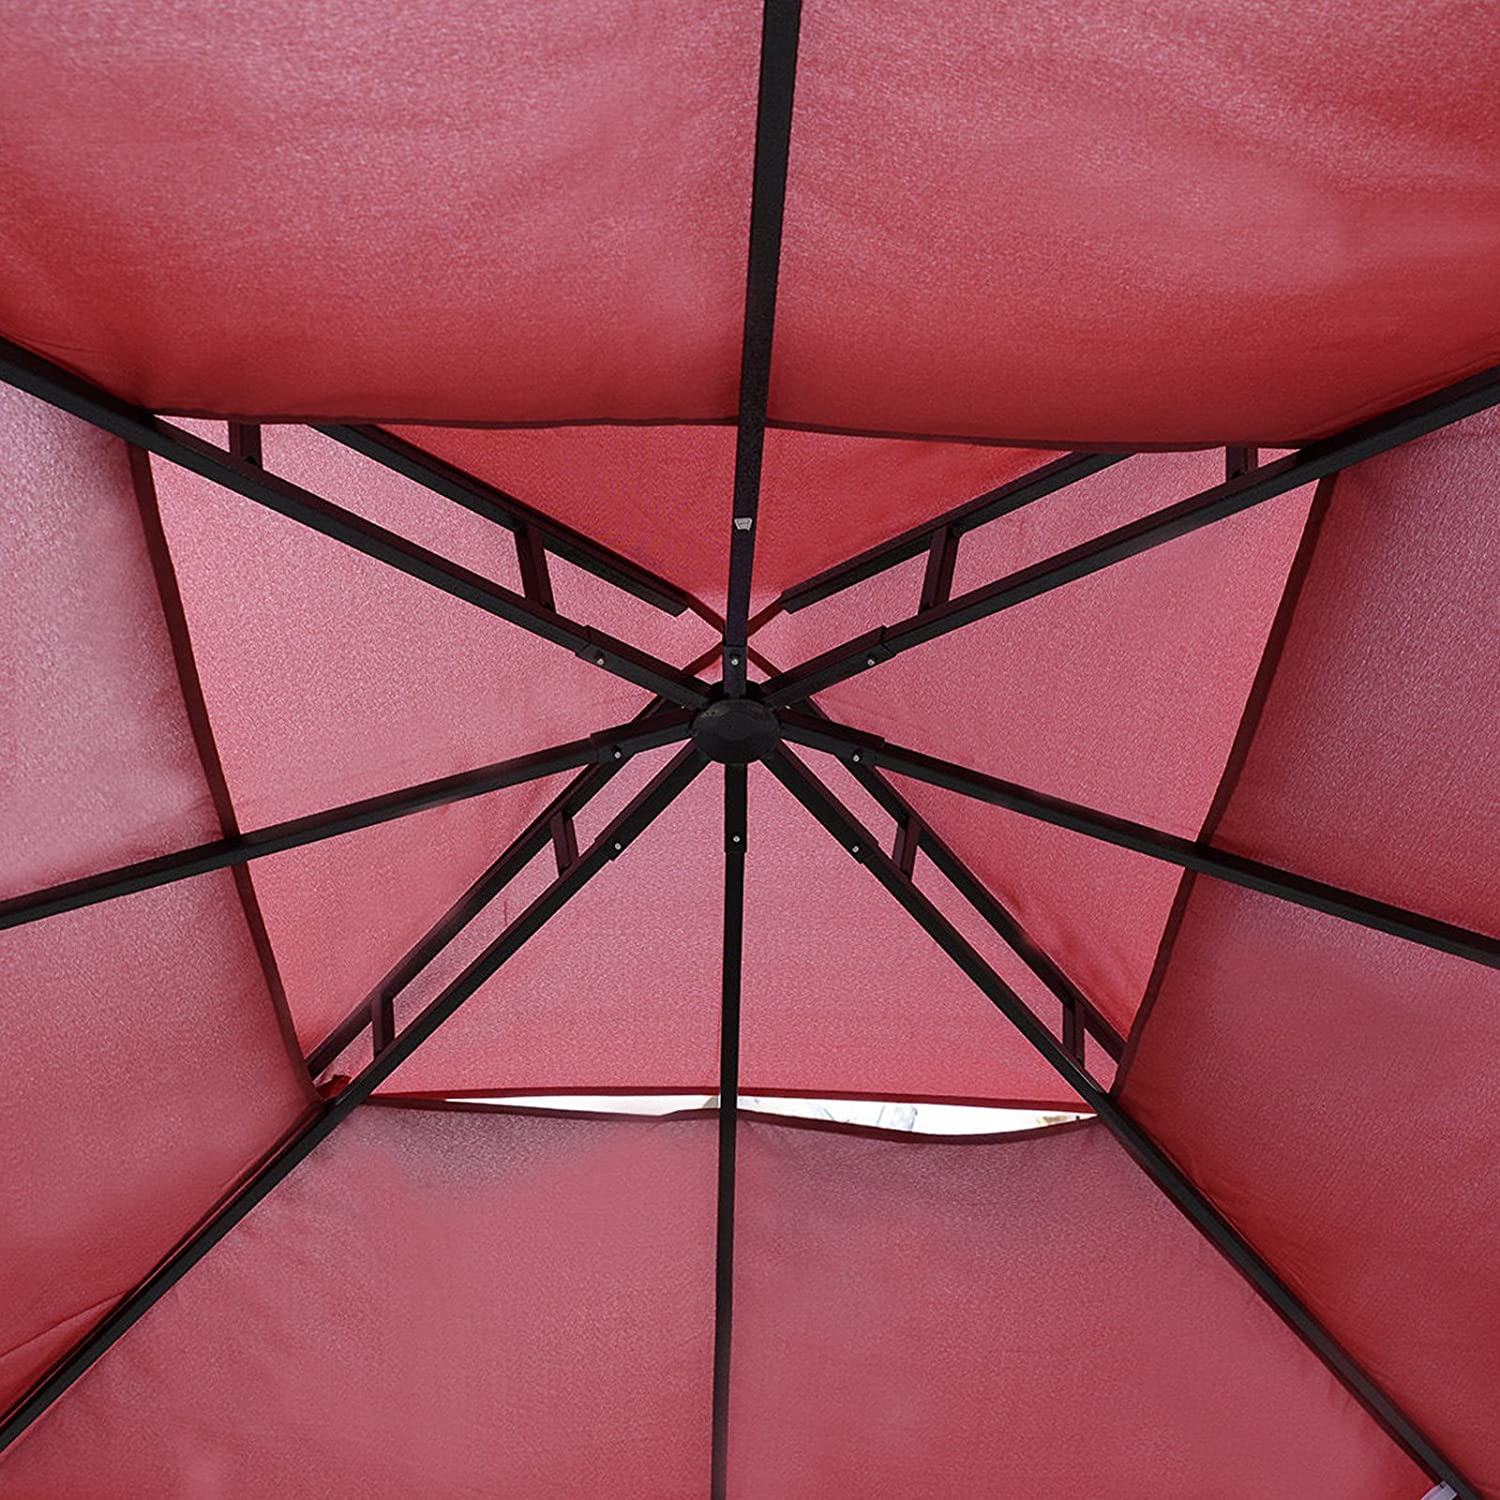 2 Tier Red SUNDRY 10 X 10 Gazebo Top Cover Patio Canopy Replacement 1-Tier or 2-Tier 3 Color Protection Against UV Rays from Sun